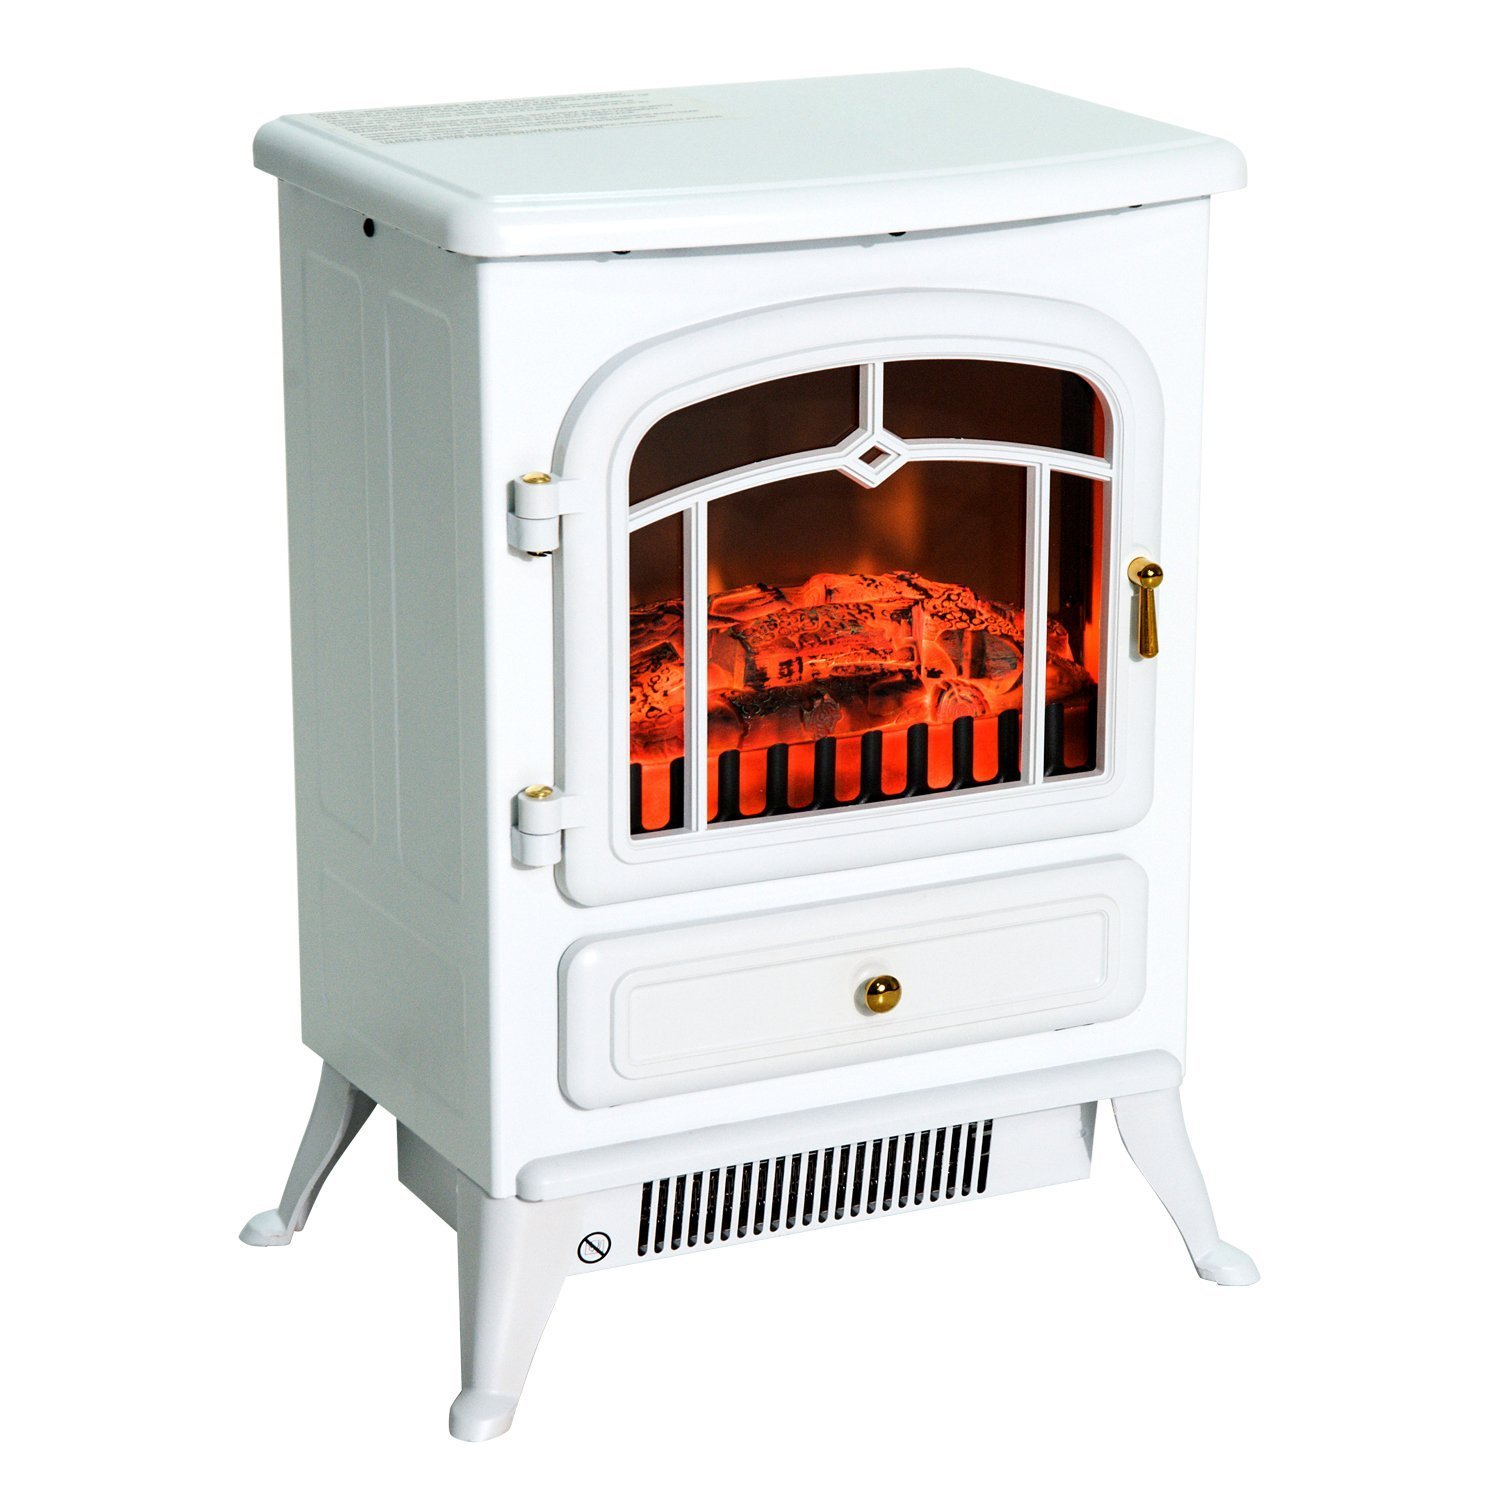 HomCom 16'' 1500W Free Standing Electric Wood Stove Fireplace Heater - White